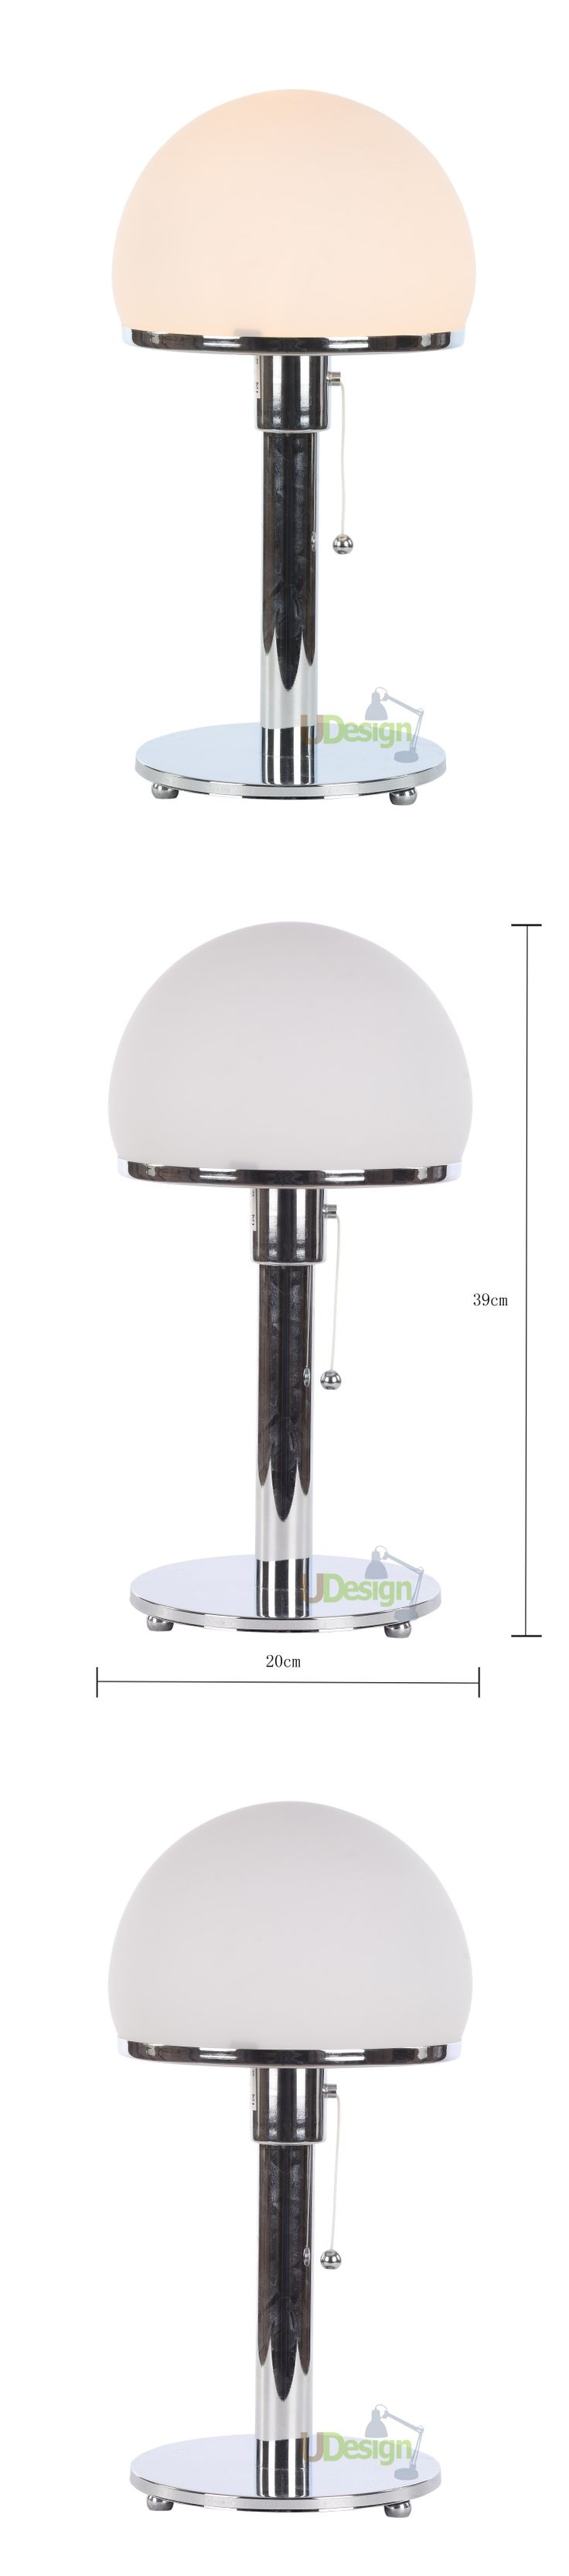 Designer lighting Replica WG24 Wilhelm Wagenfeld -Bauhaus lamp chrome base table lamp -Bauhaus lamp